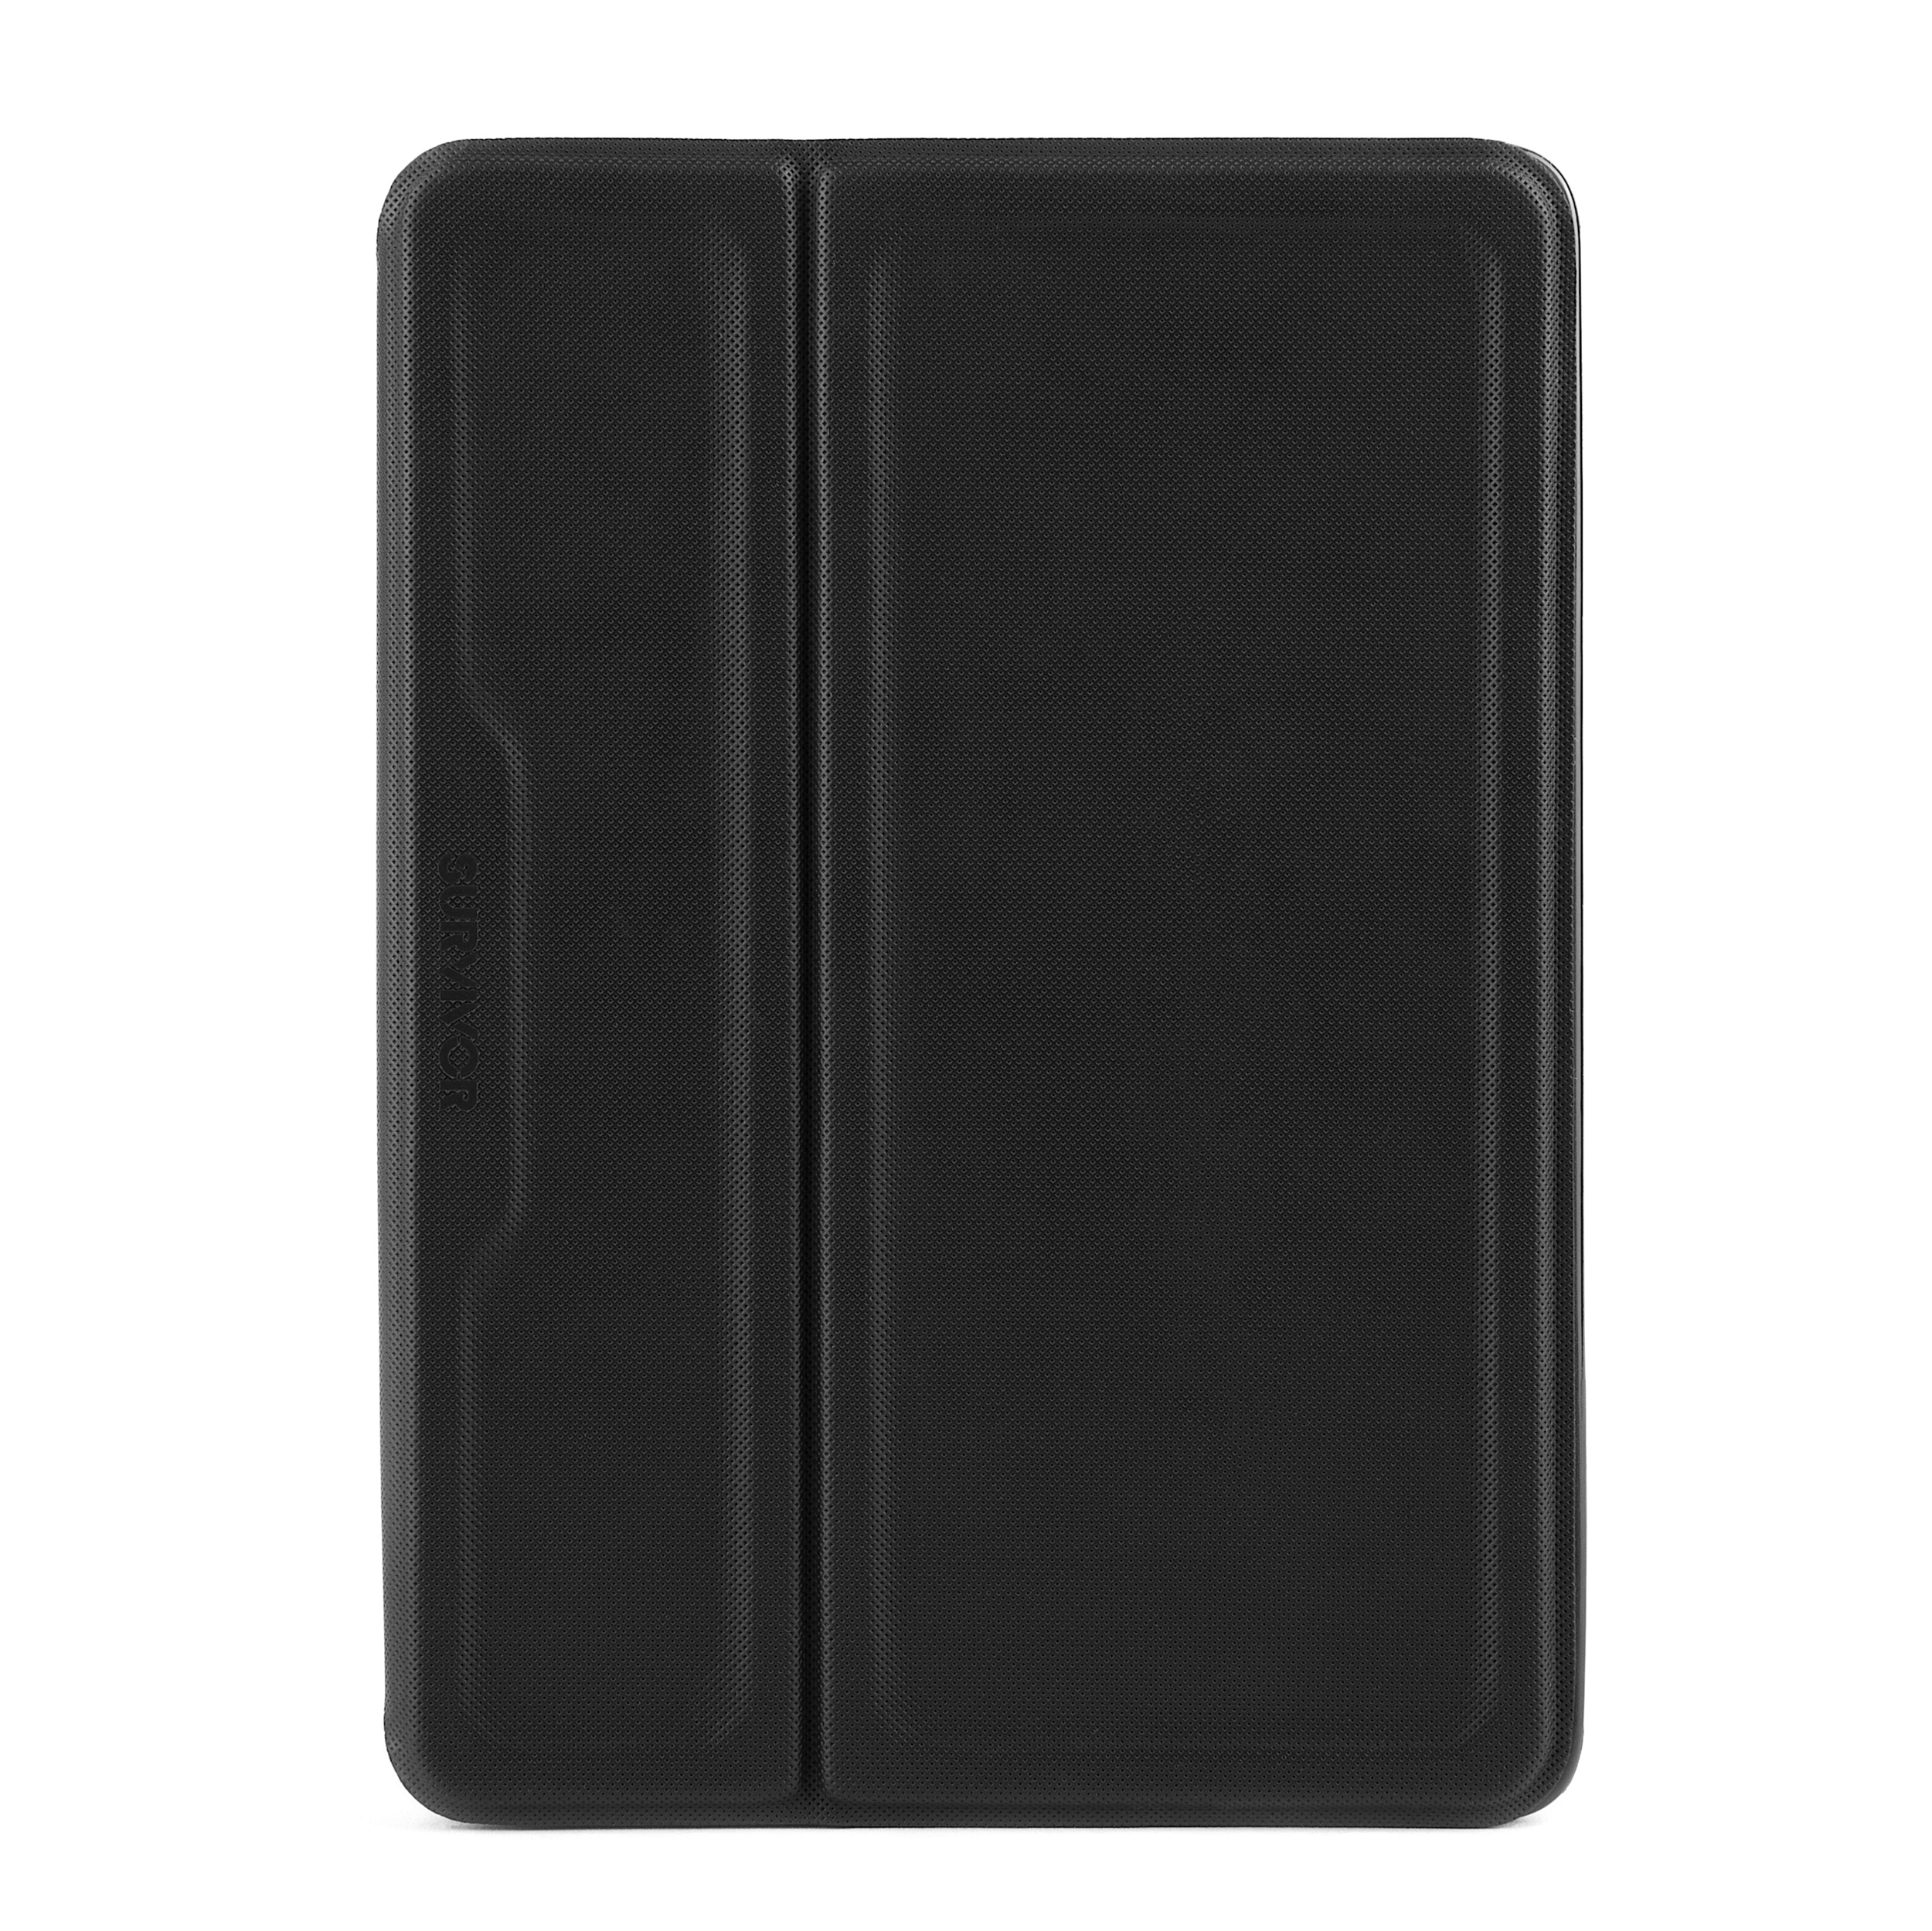 iPAD AIR 2019 10.5 pouces Griffin Survivor Rugged Folio 3 en 1 Noir